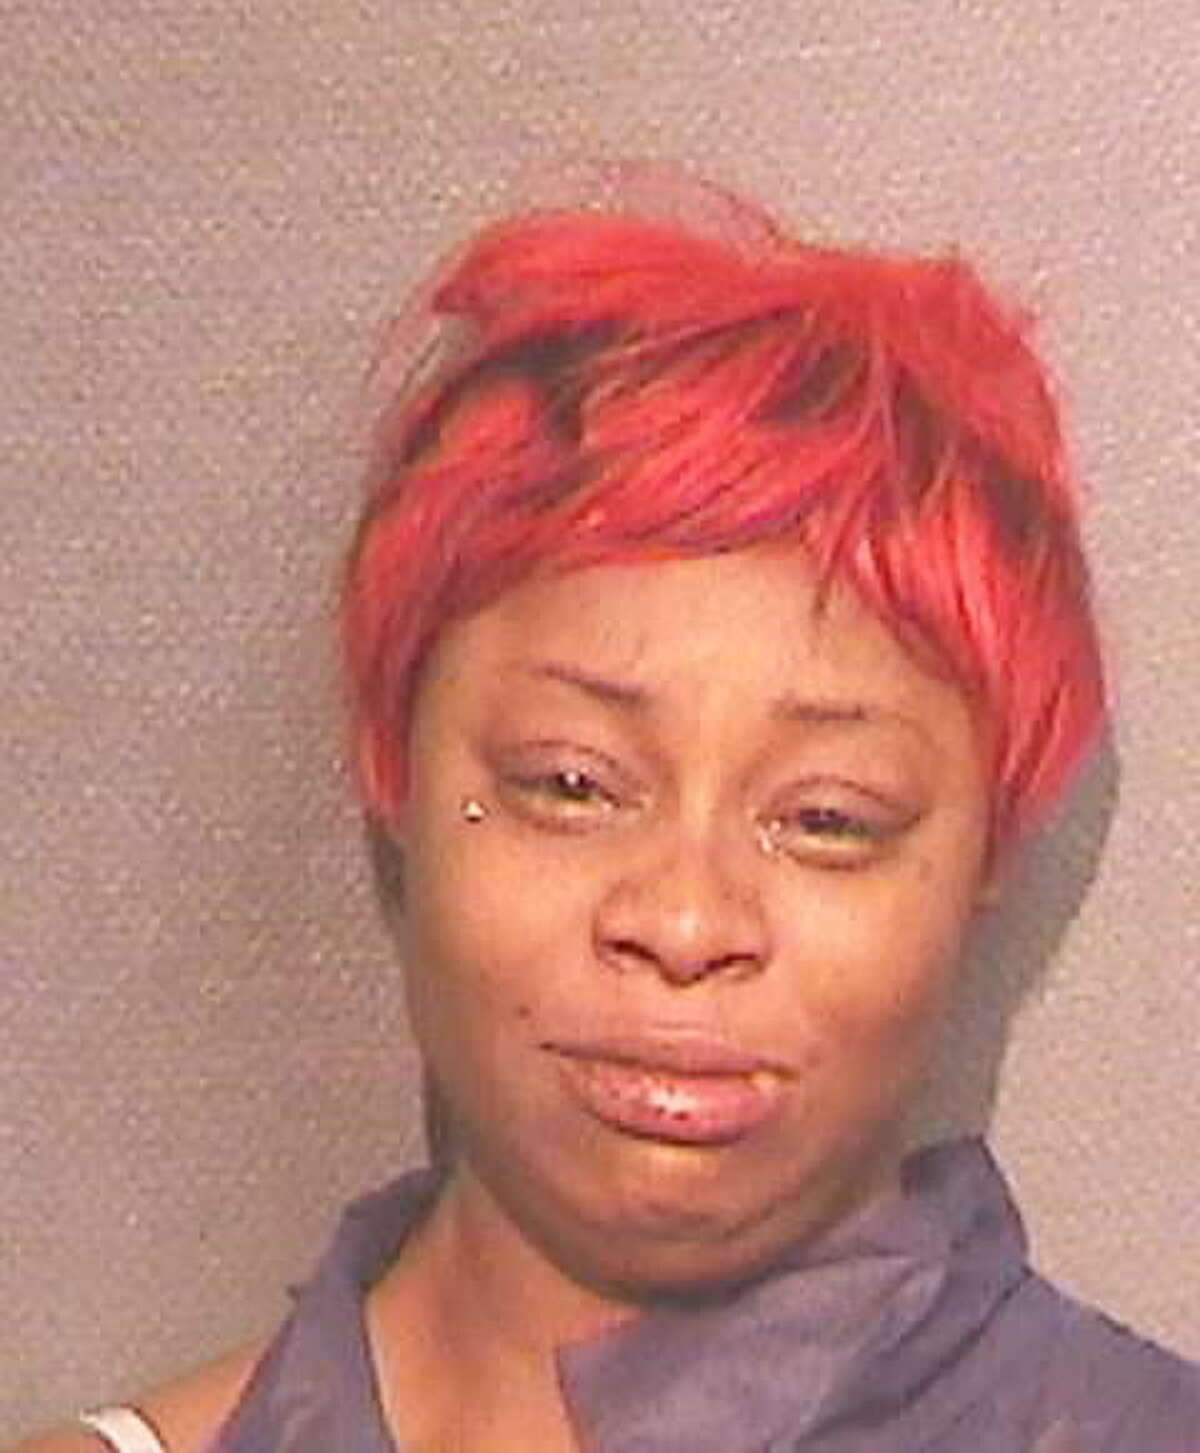 Simetrice Evon Johnson was arrested in March 2018 on a charge of DWI with a child passenger.